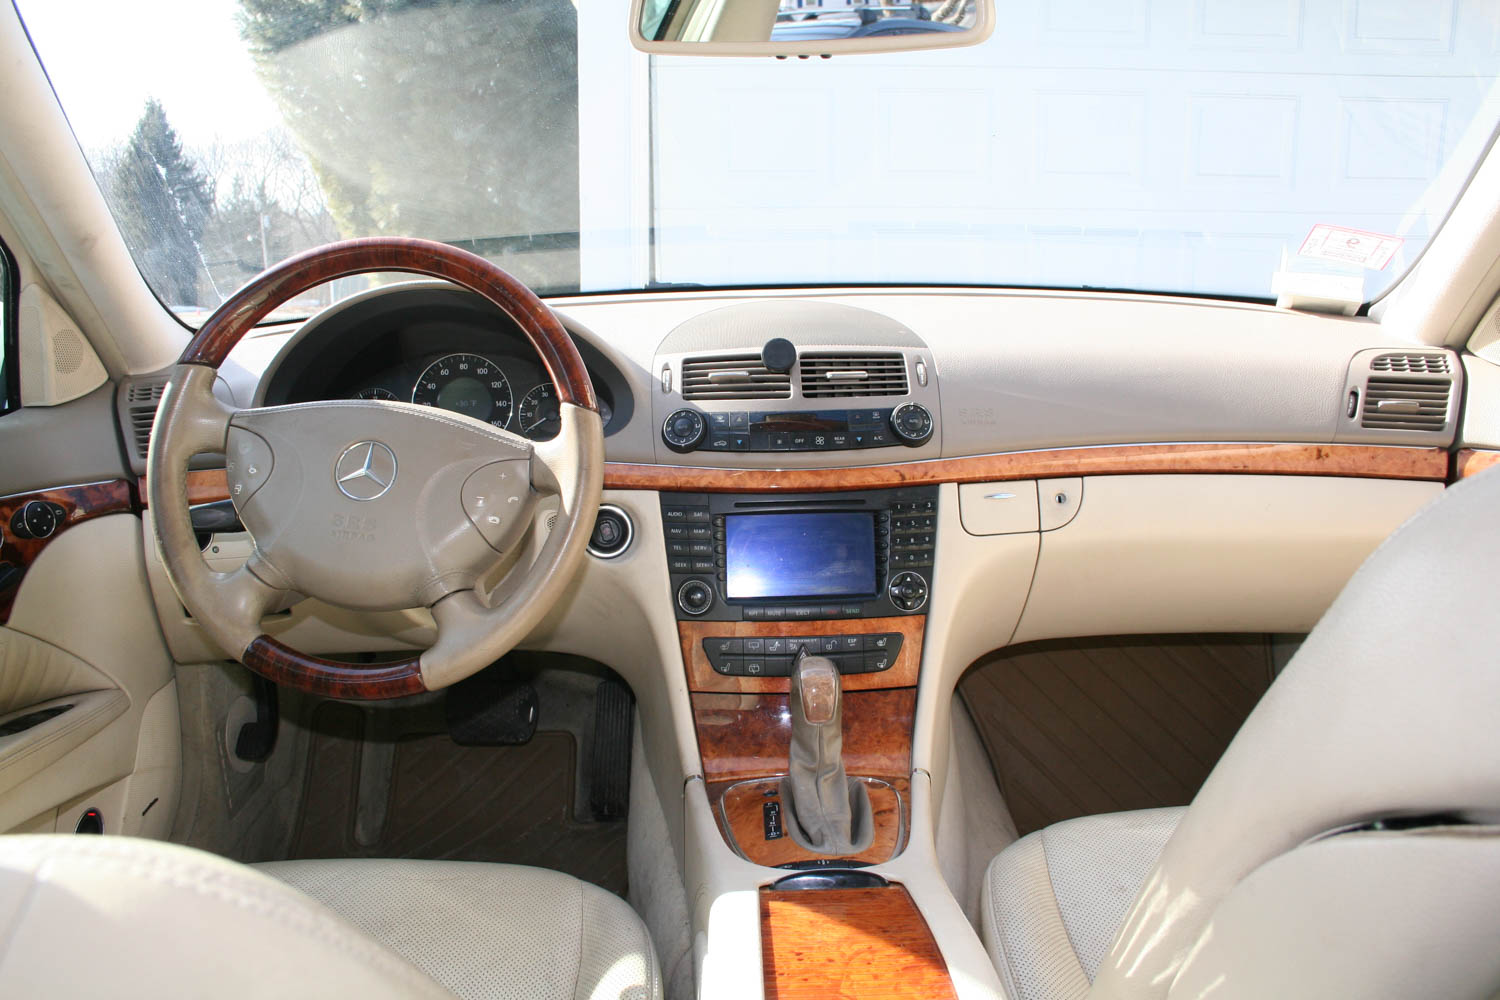 The beige interior and burled walnut trim just oozed tranquility.